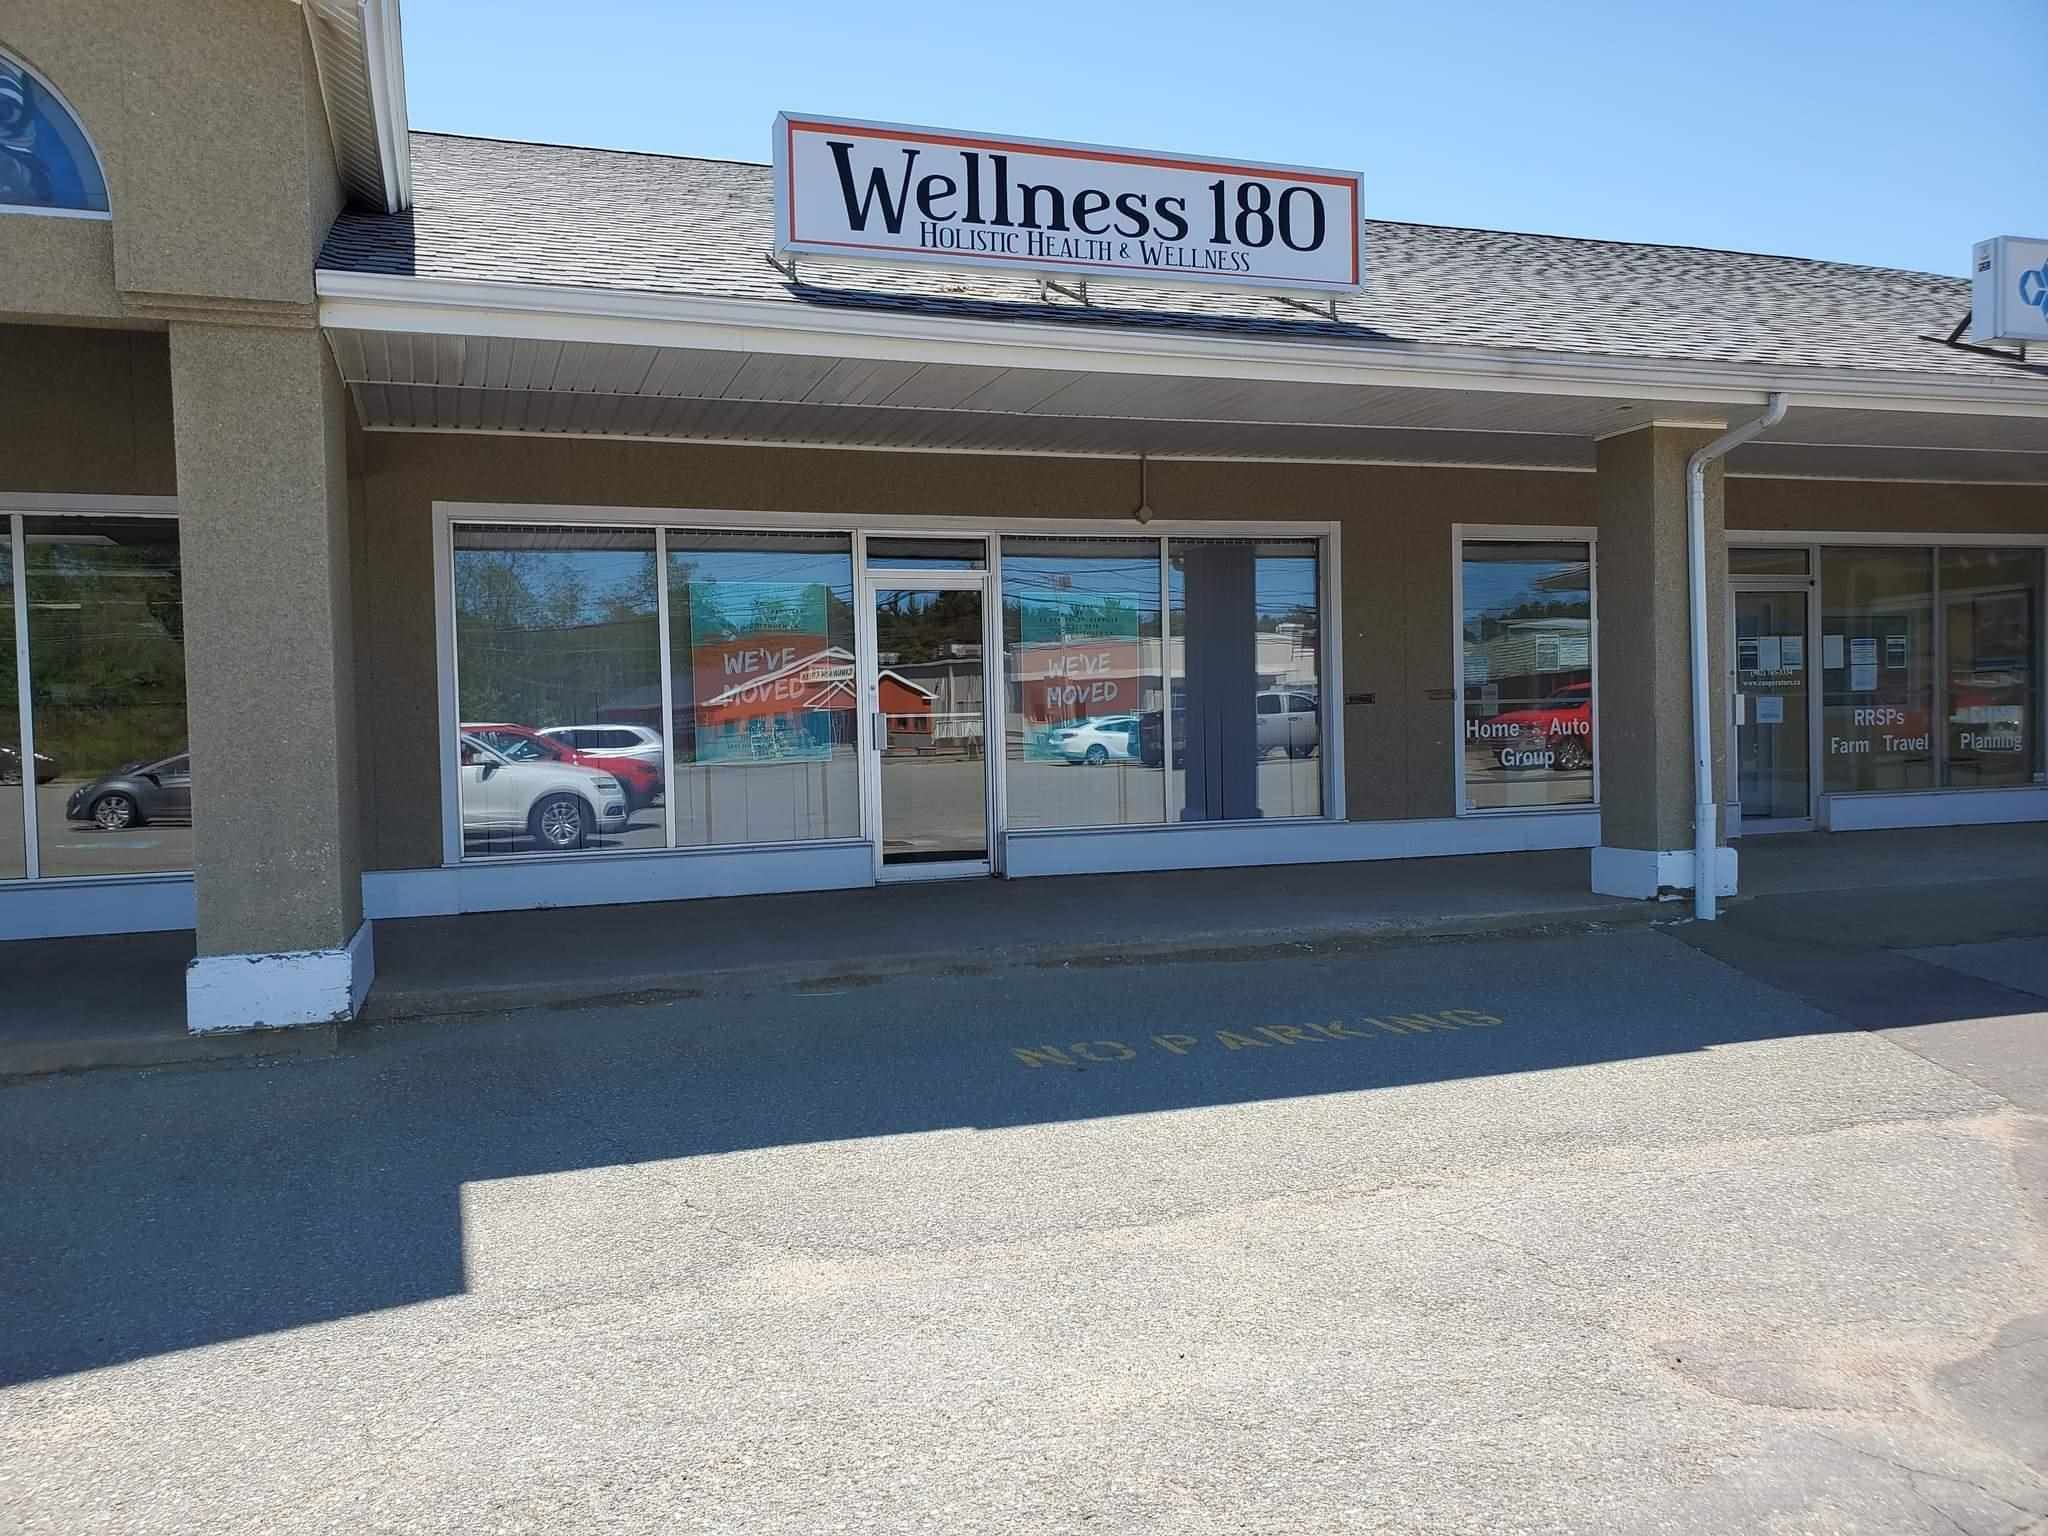 Main Photo: C 780 Central Avenue in Greenwood: 404-Kings County Commercial for lease (Annapolis Valley)  : MLS®# 202114828